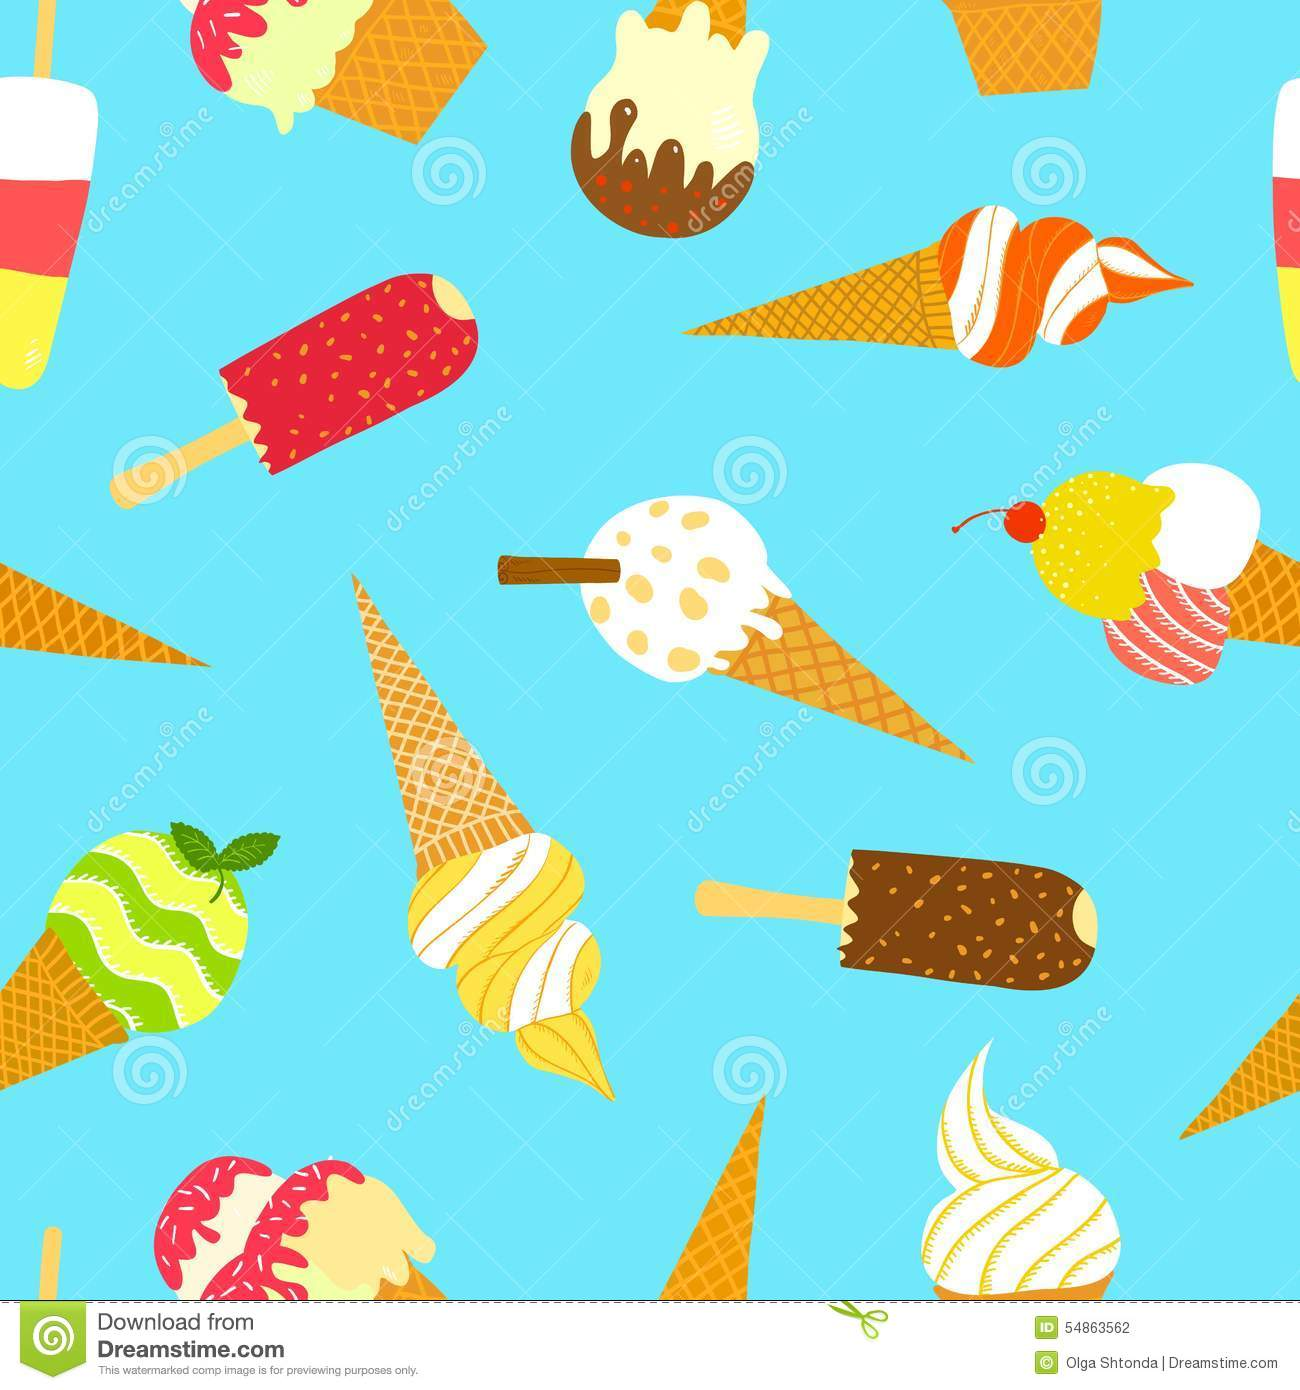 Free Backgrounds Ice Cream Cone Hd Desktop Wallpaper: Hand Drawn Ice Cream Pattern. Stock Illustration